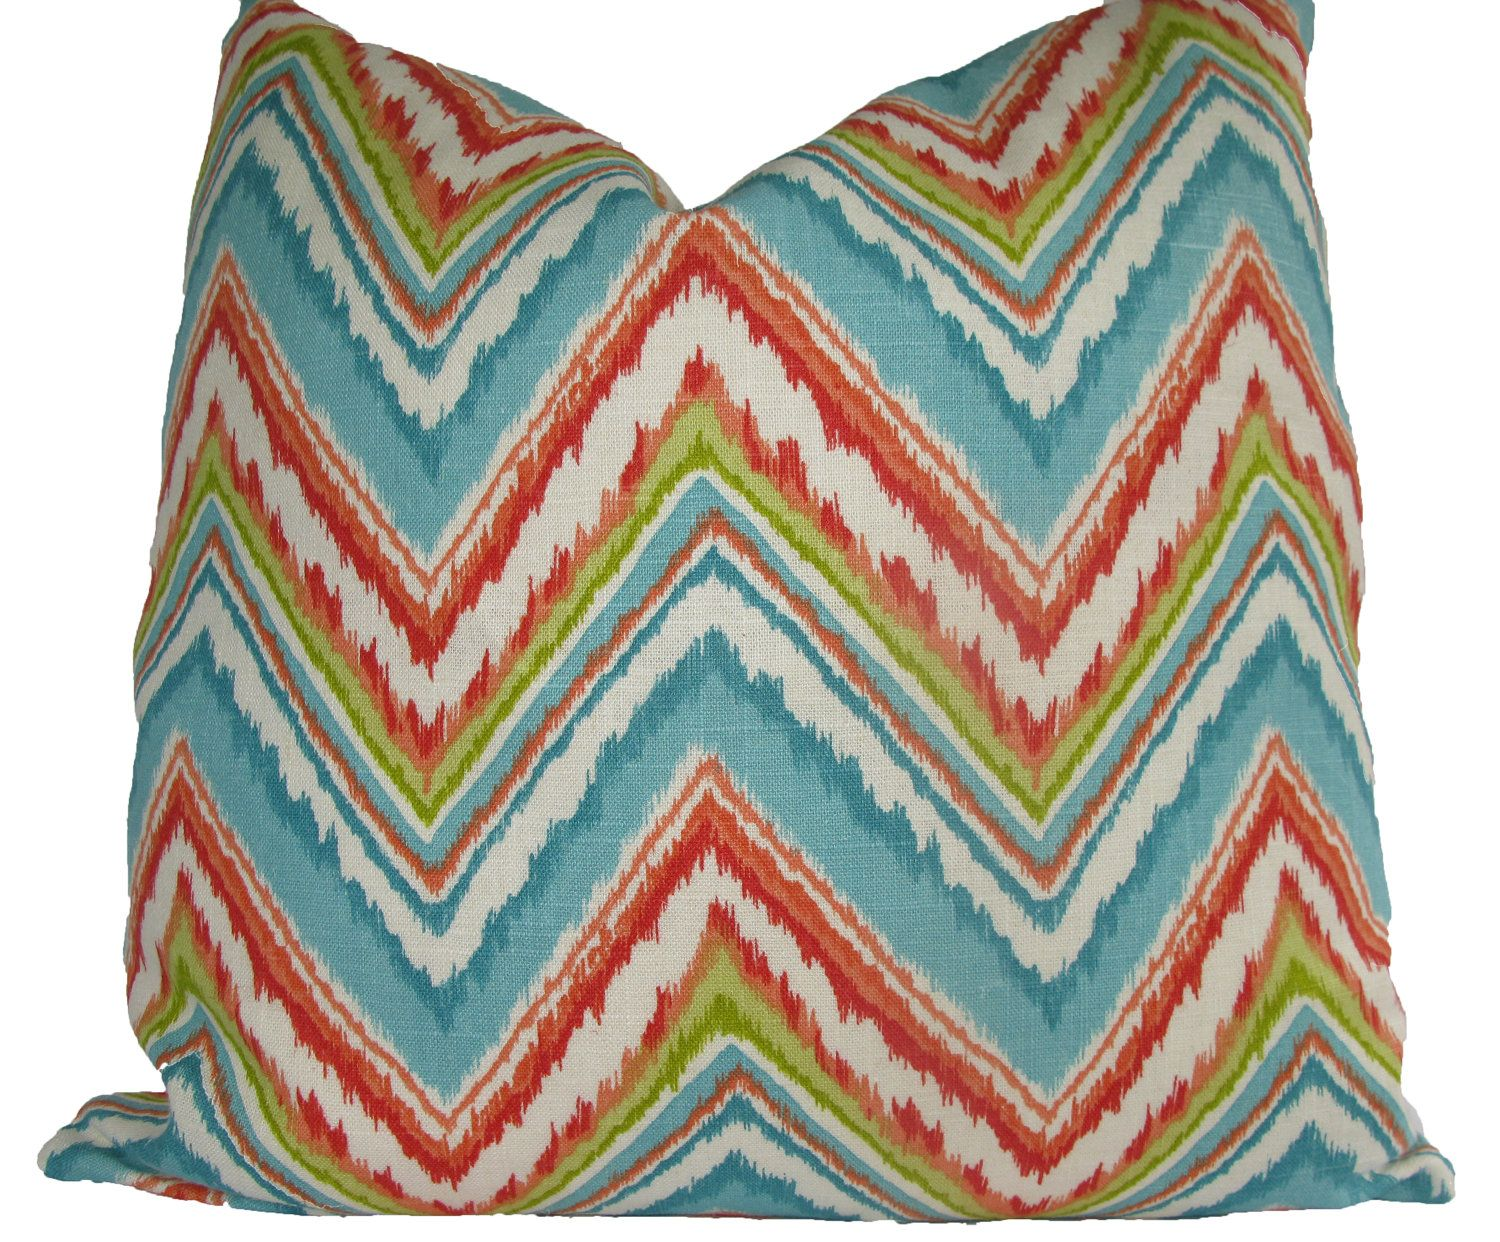 Decorative Designer Ikat Chevron Pillow Cover, Coral, Turquoise, Orange, Chartreuse 18x18, 20x20, 22x22, Throw Pillow. $38.00, via Etsy.